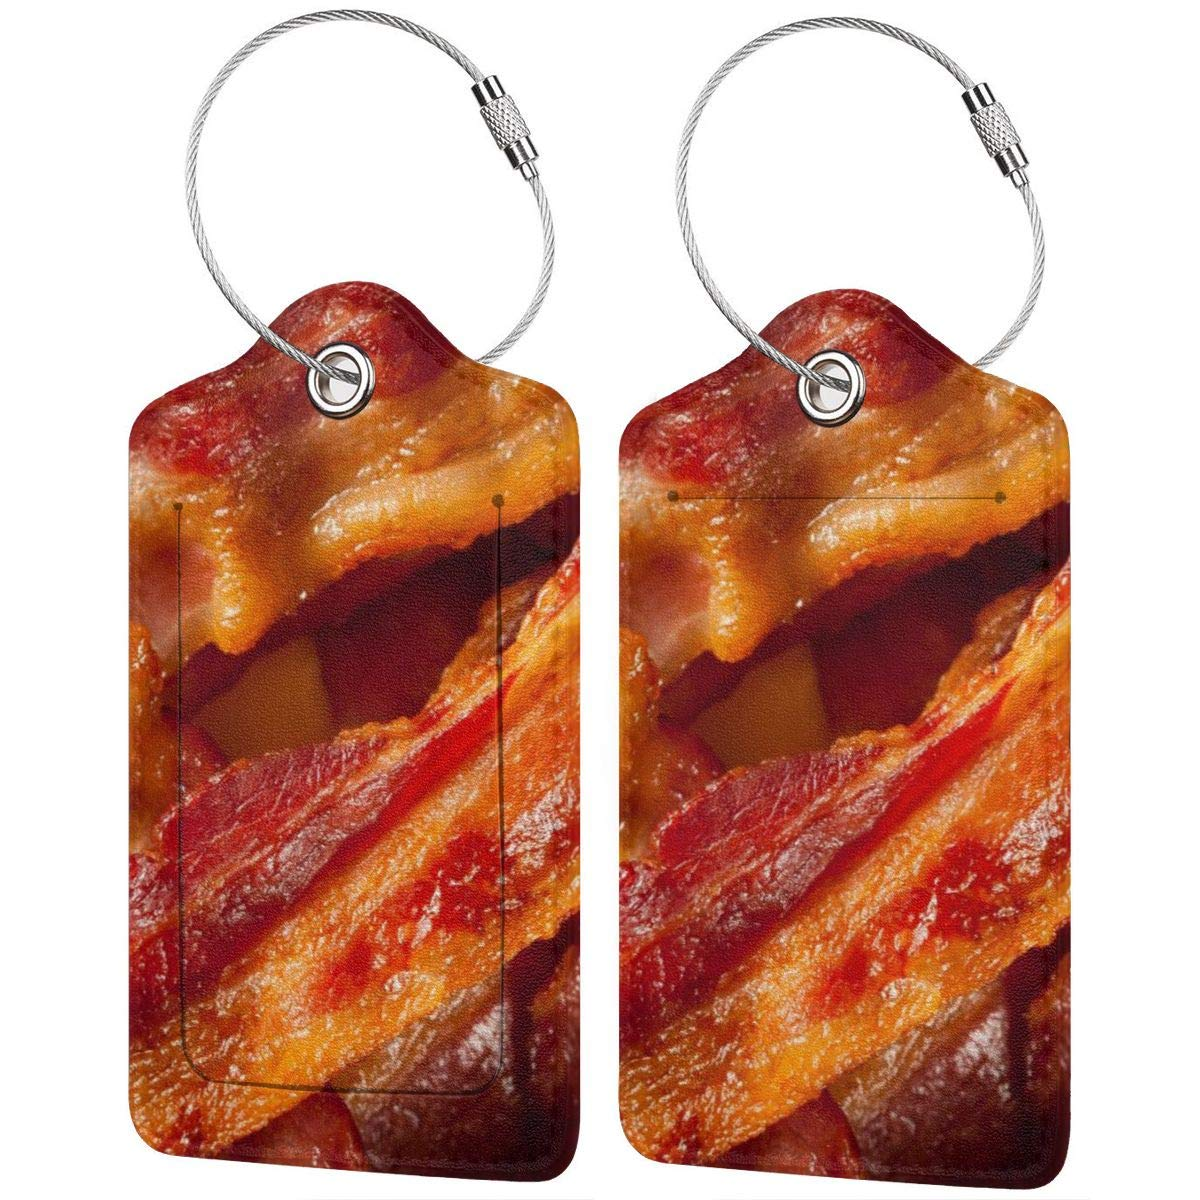 Bacon Travel Luggage Tags With Full Privacy Cover Leather Case And Stainless Steel Loop